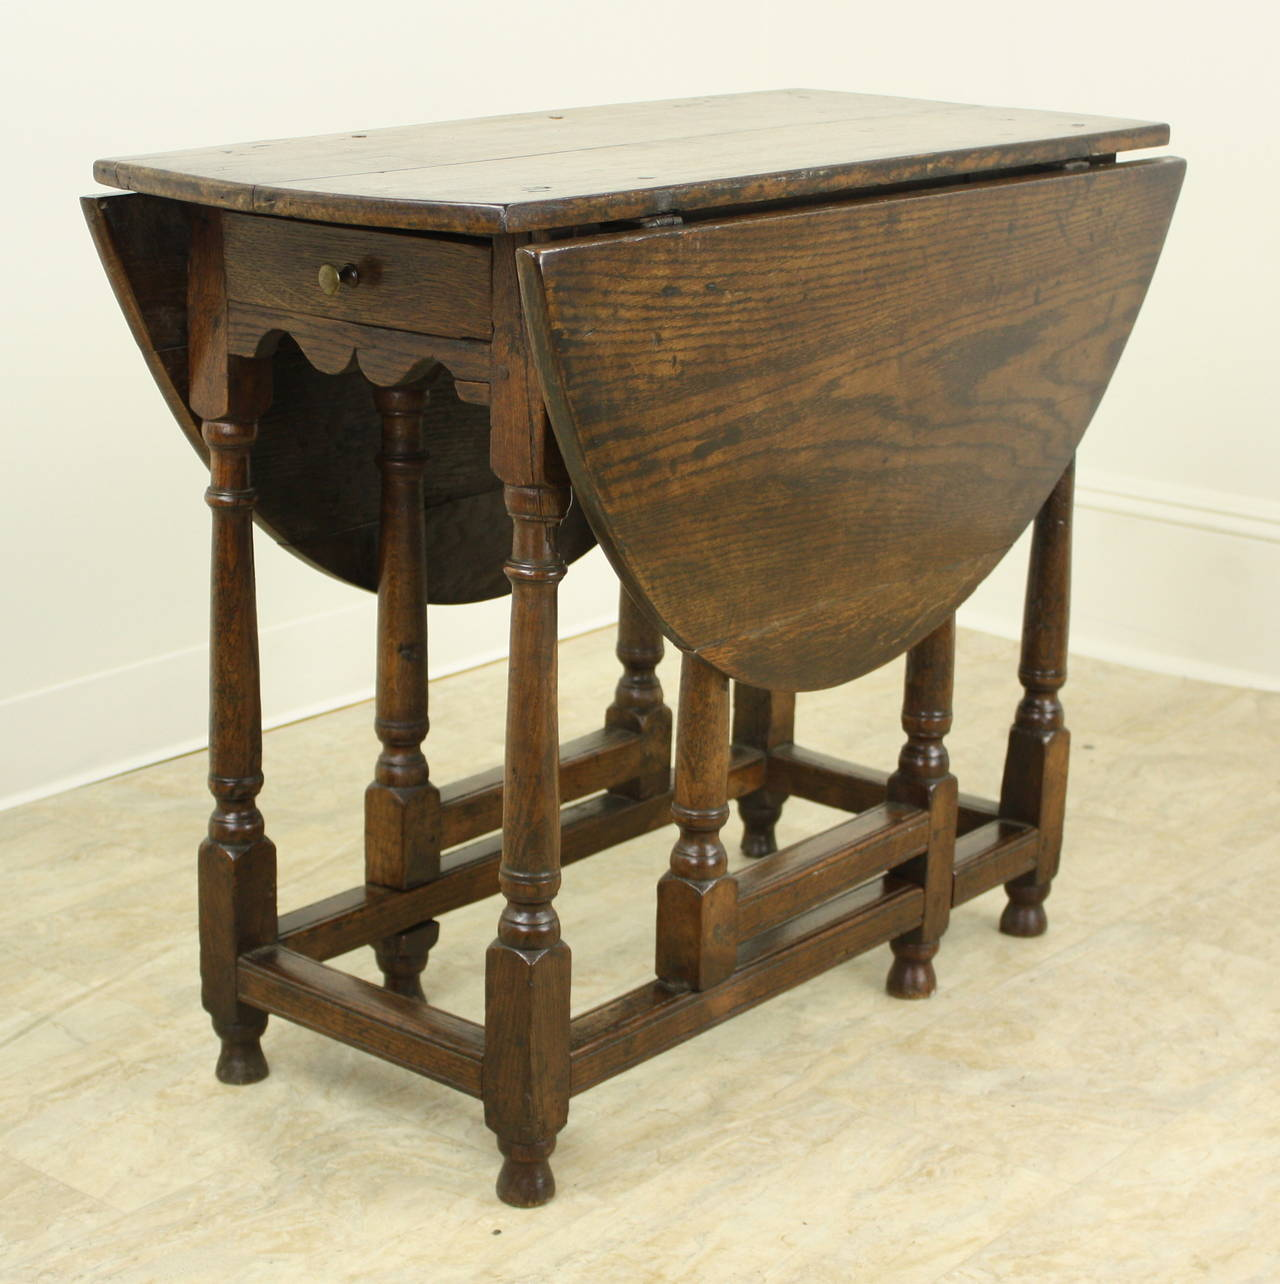 A Charming Period Oak Gateleg Table, With A Small Size That Allows A  Multitude Of